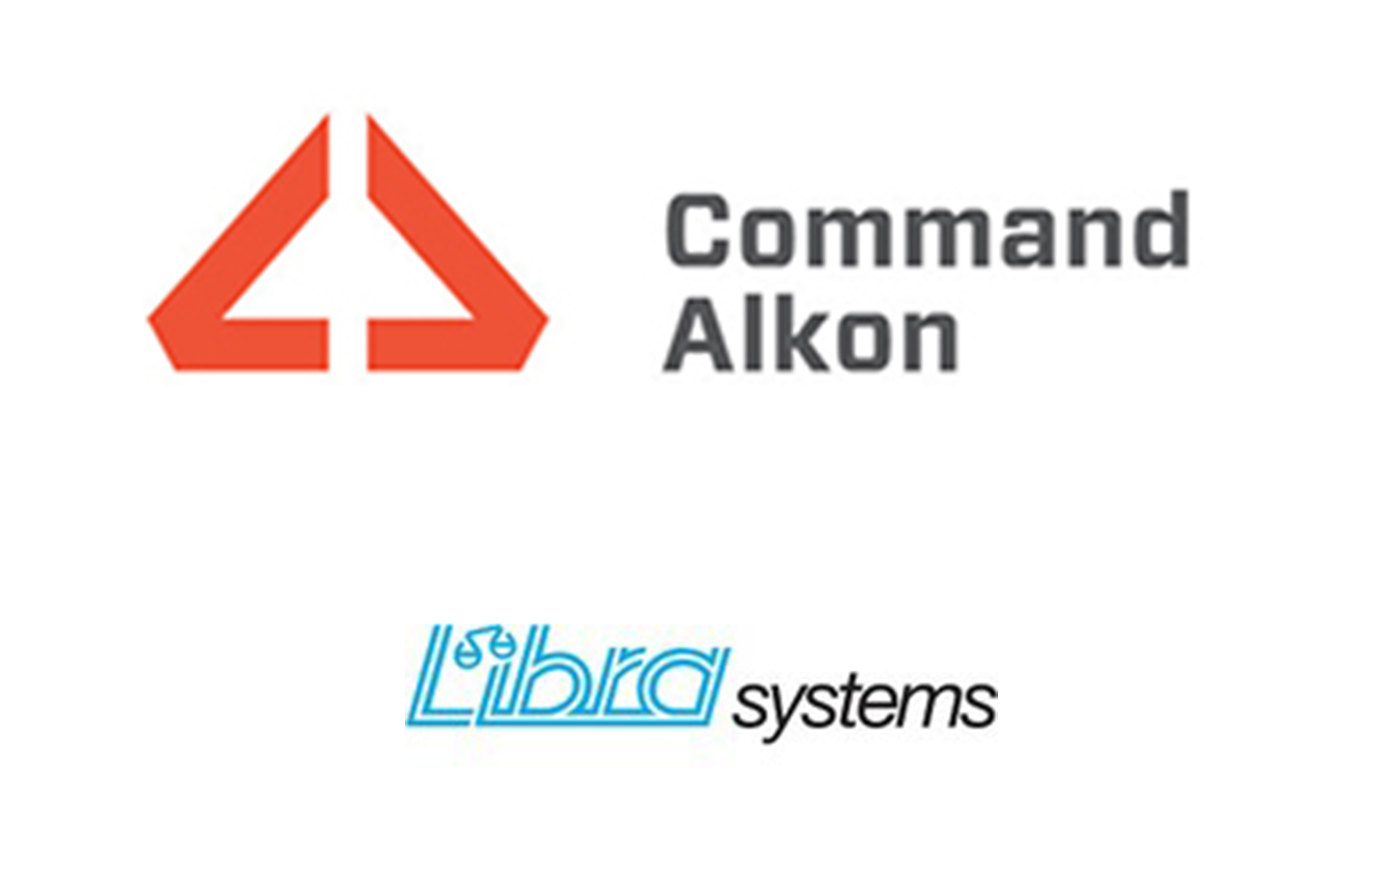 Photo: Command Alkon and Libra Systems logos